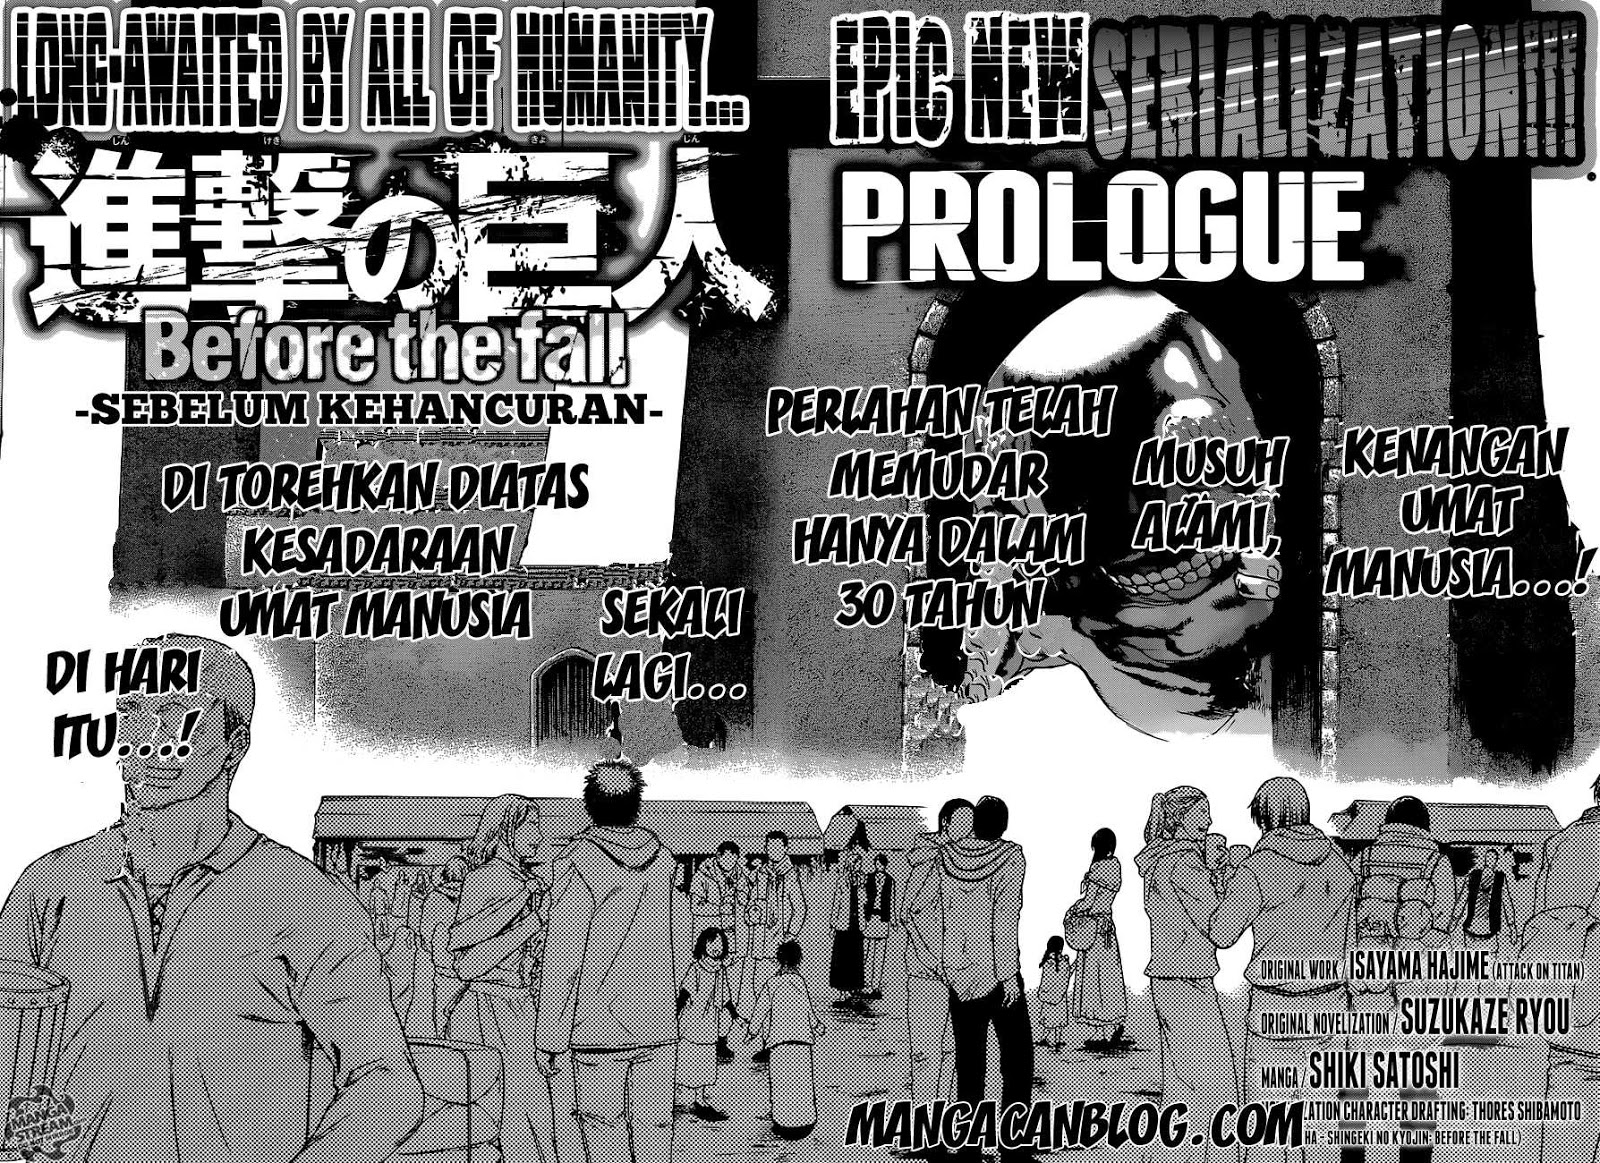 Dilarang COPAS - situs resmi www.mangacanblog.com - Komik attack on titan before the fall 000 - prologue 1 Indonesia attack on titan before the fall 000 - prologue Terbaru 2|Baca Manga Komik Indonesia|Mangacan